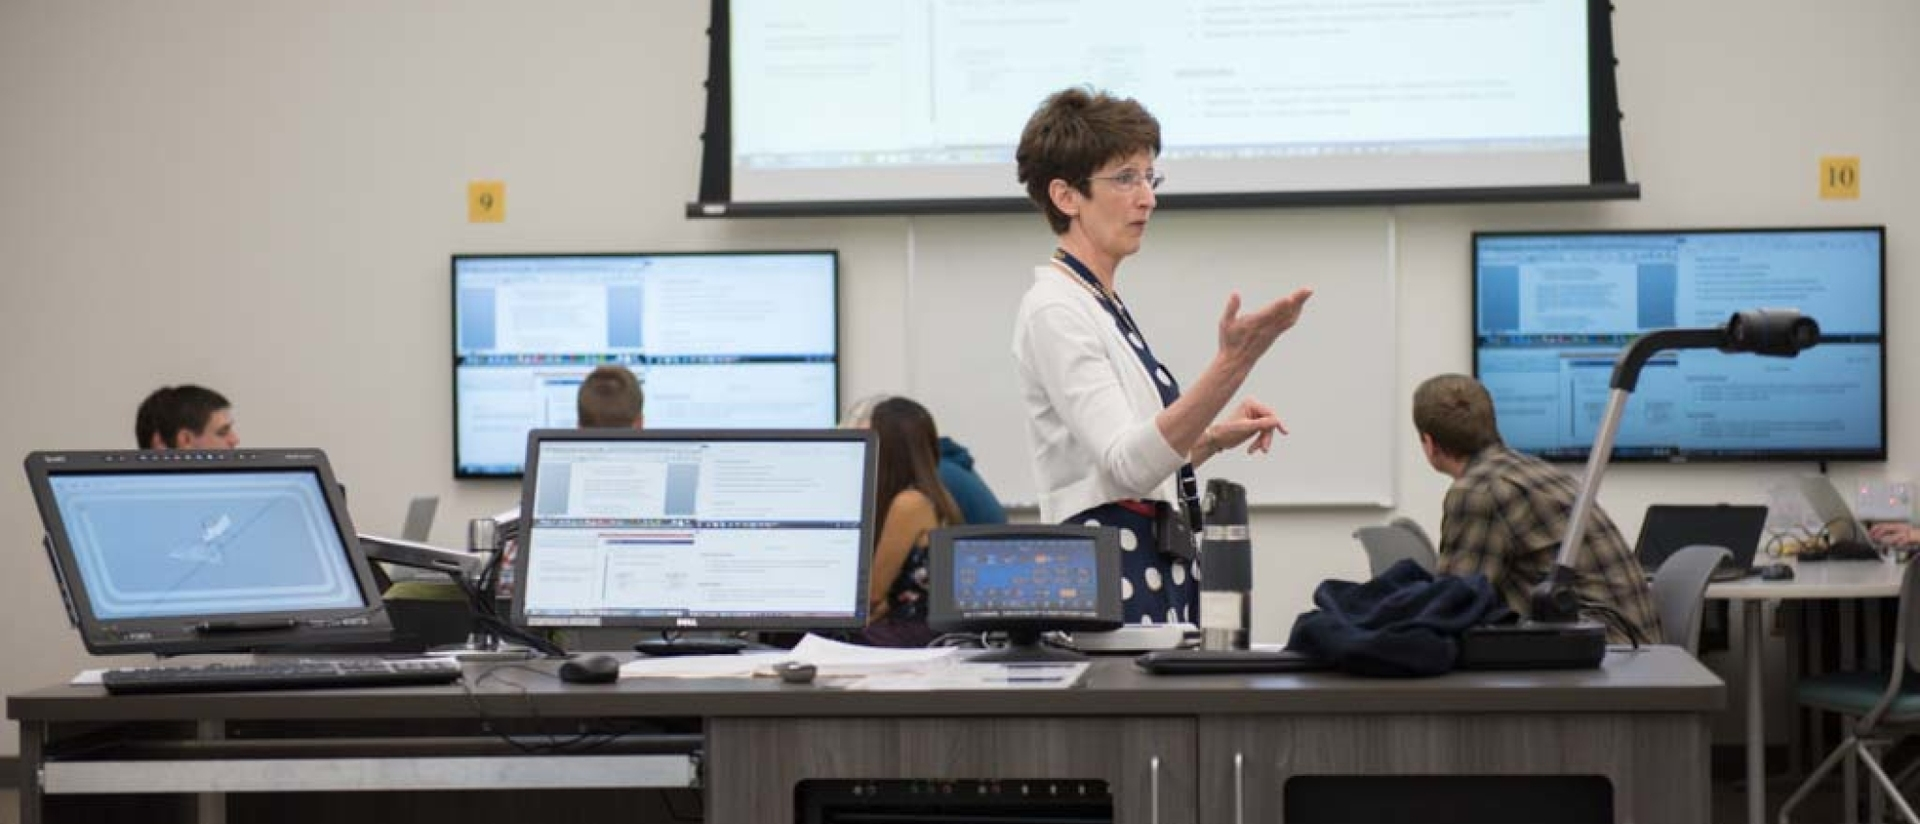 Professor Pratt teaching an Information Systems class